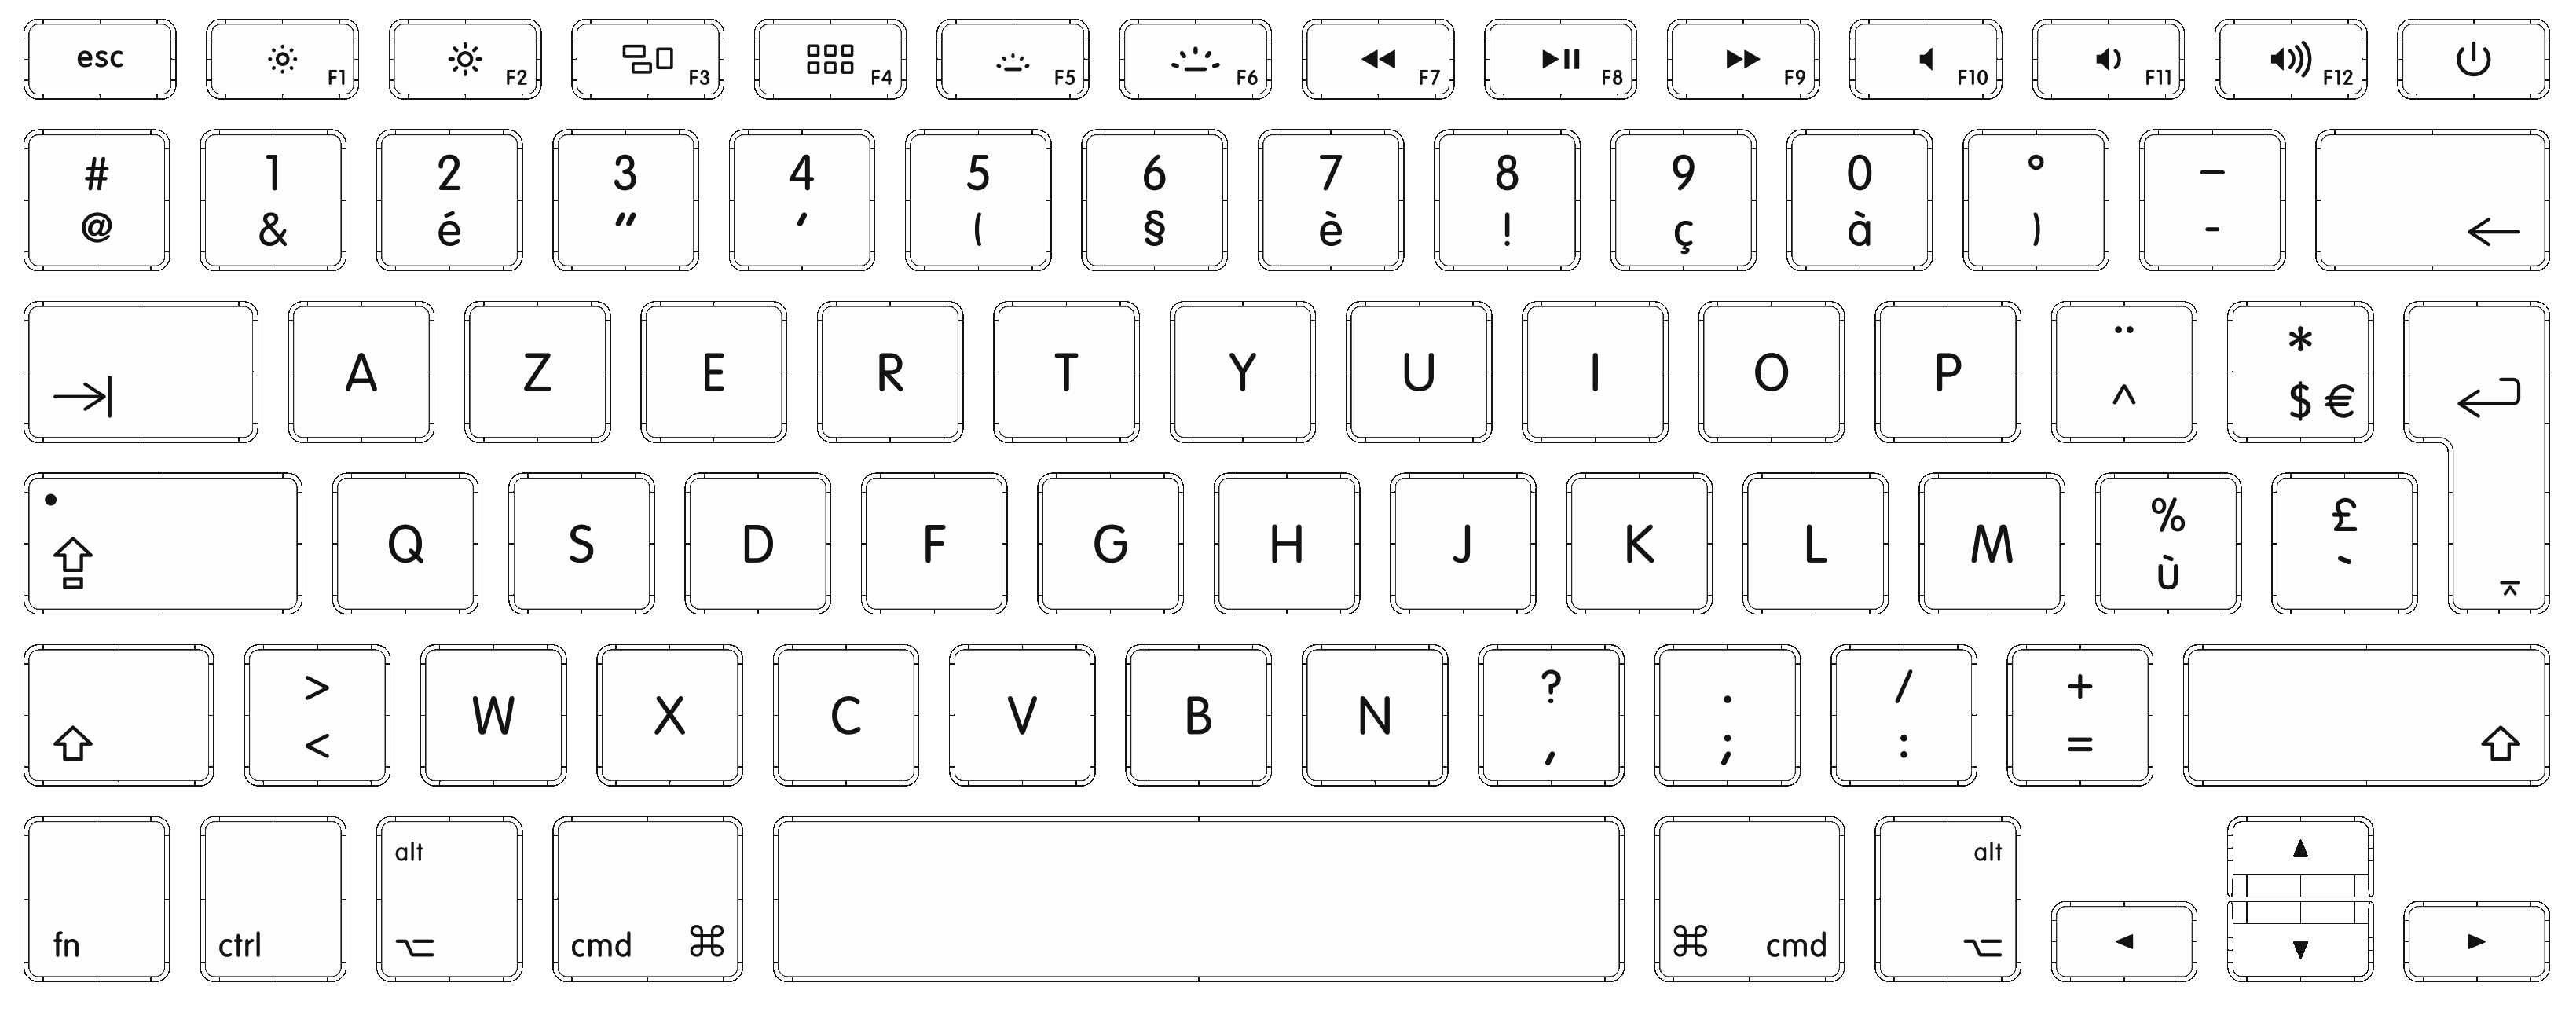 photo about Keyboard Template Printable named Keyboard clipart mac keyboard, Keyboard mac keyboard